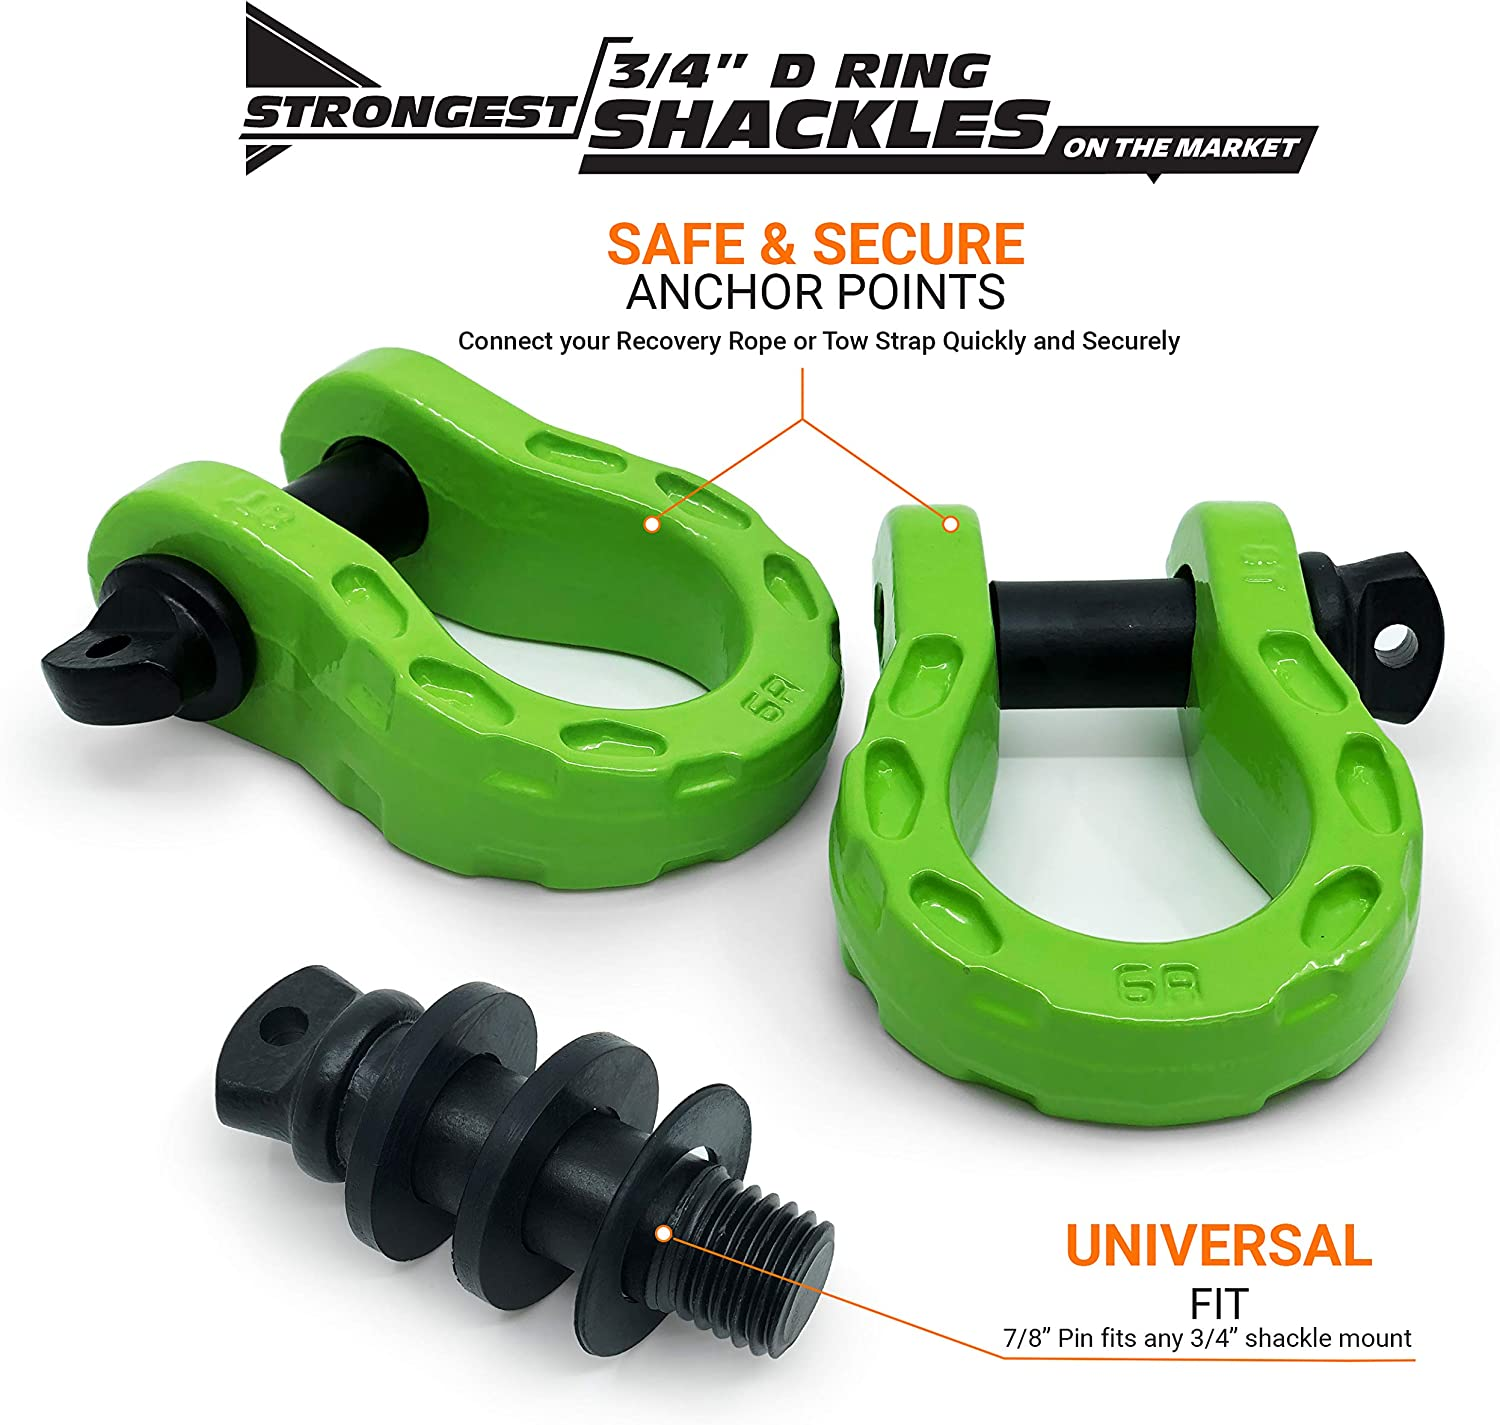 Securely Connect Tow Strap or Winch Rope to 4x4 for Off-Road 4x4 Recovery | 68,000 lbs Capacity Stronger Than 3//4 D Rings Tow Shackle GearAmerica Mega Shackles Blue 7//8 Pin Washers 2PK